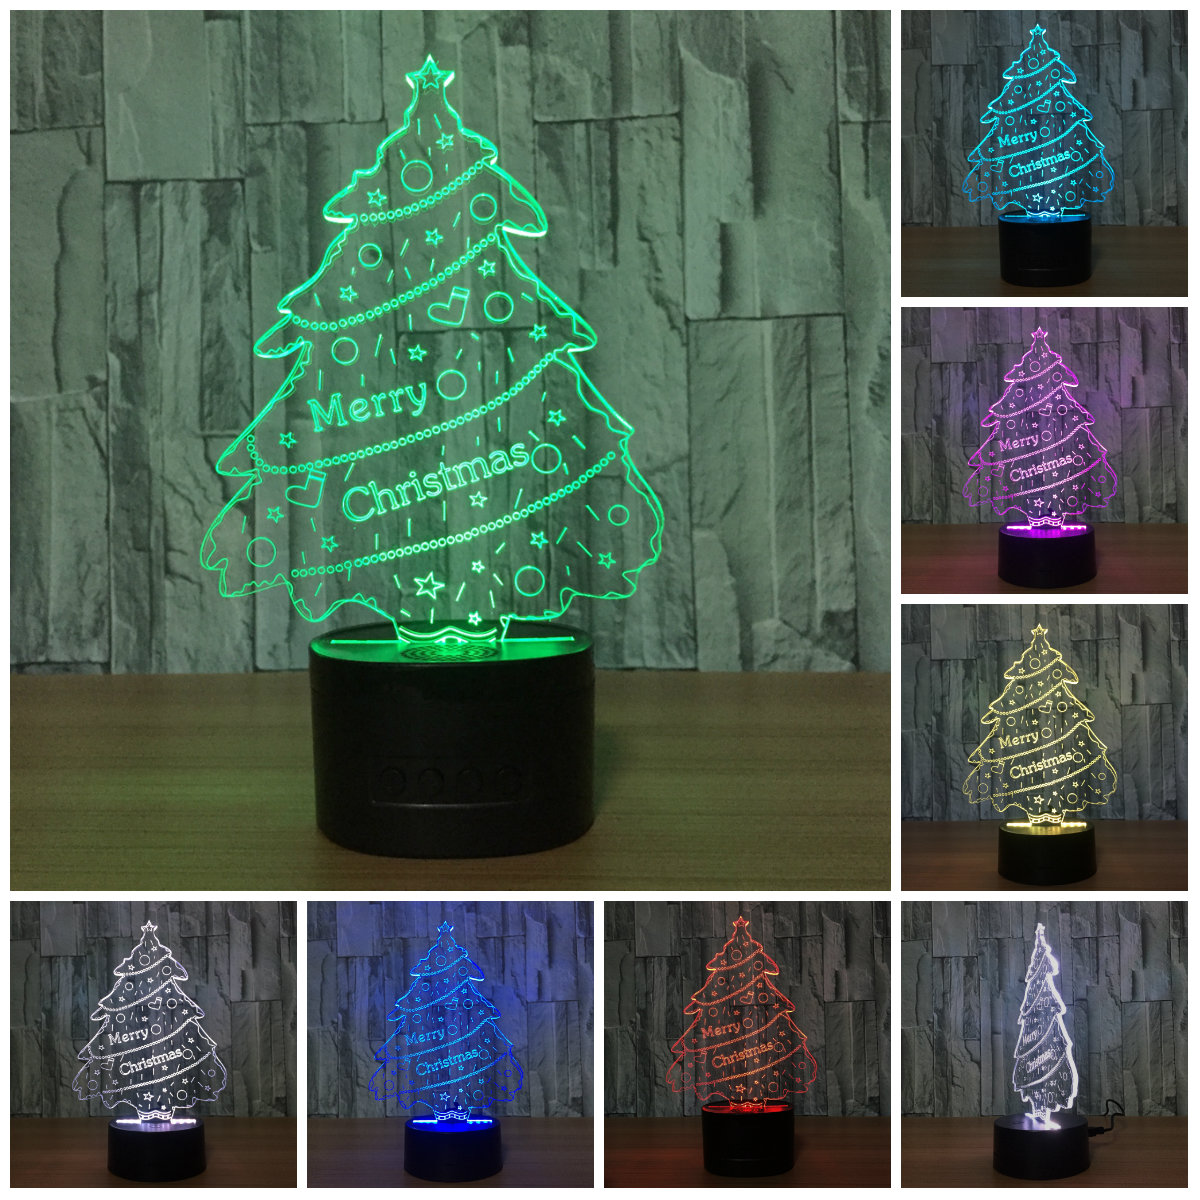 Merry Chrismas Tree Holiday Lighting Xmas LED Night Light Party Decorative USB Desk Tabe ...